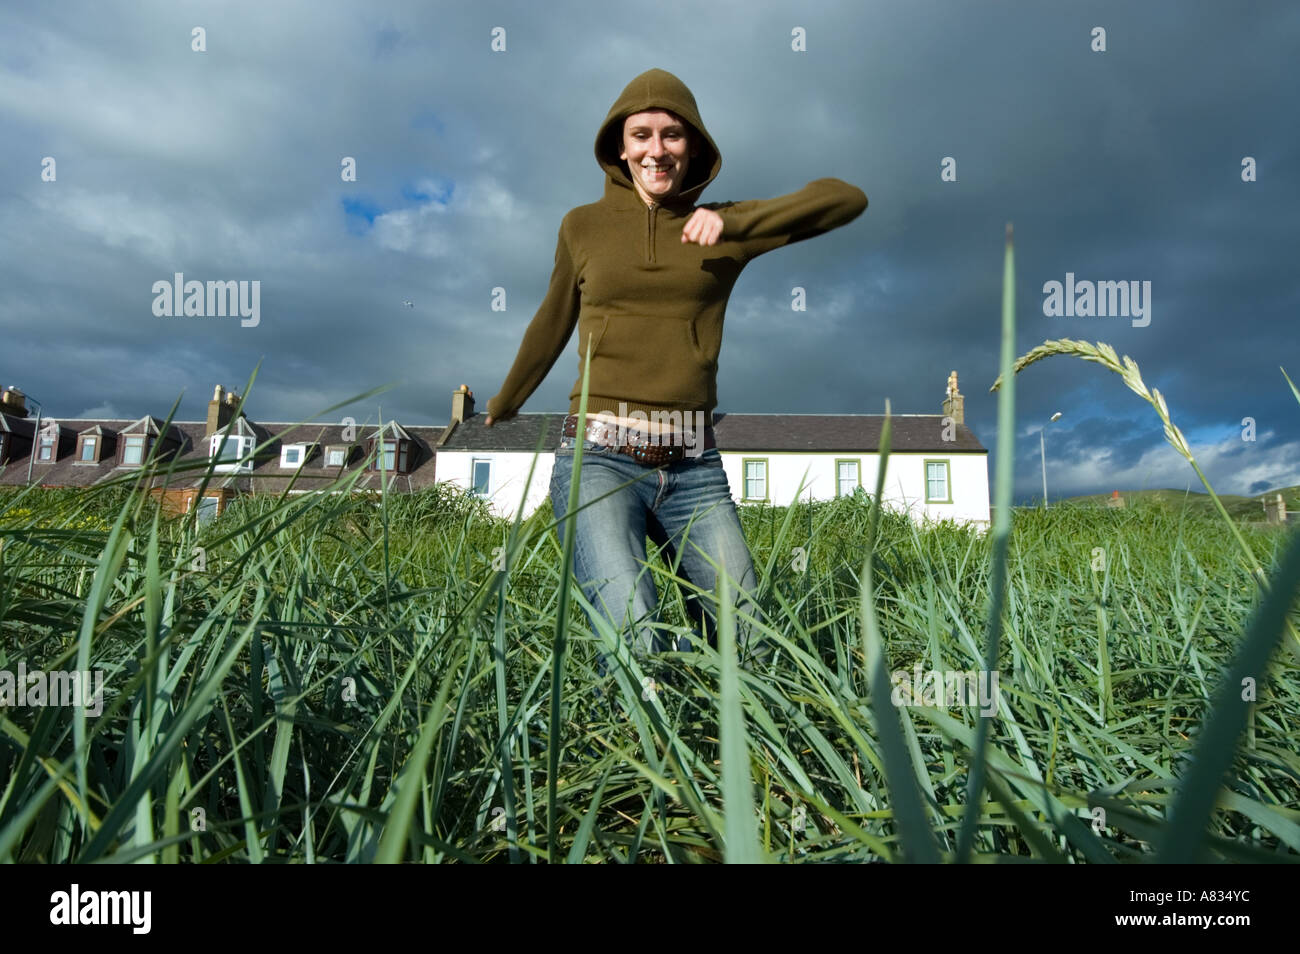 Young woman wearing jeans and t-shirt jumping merrily in tall grass - Stock Image